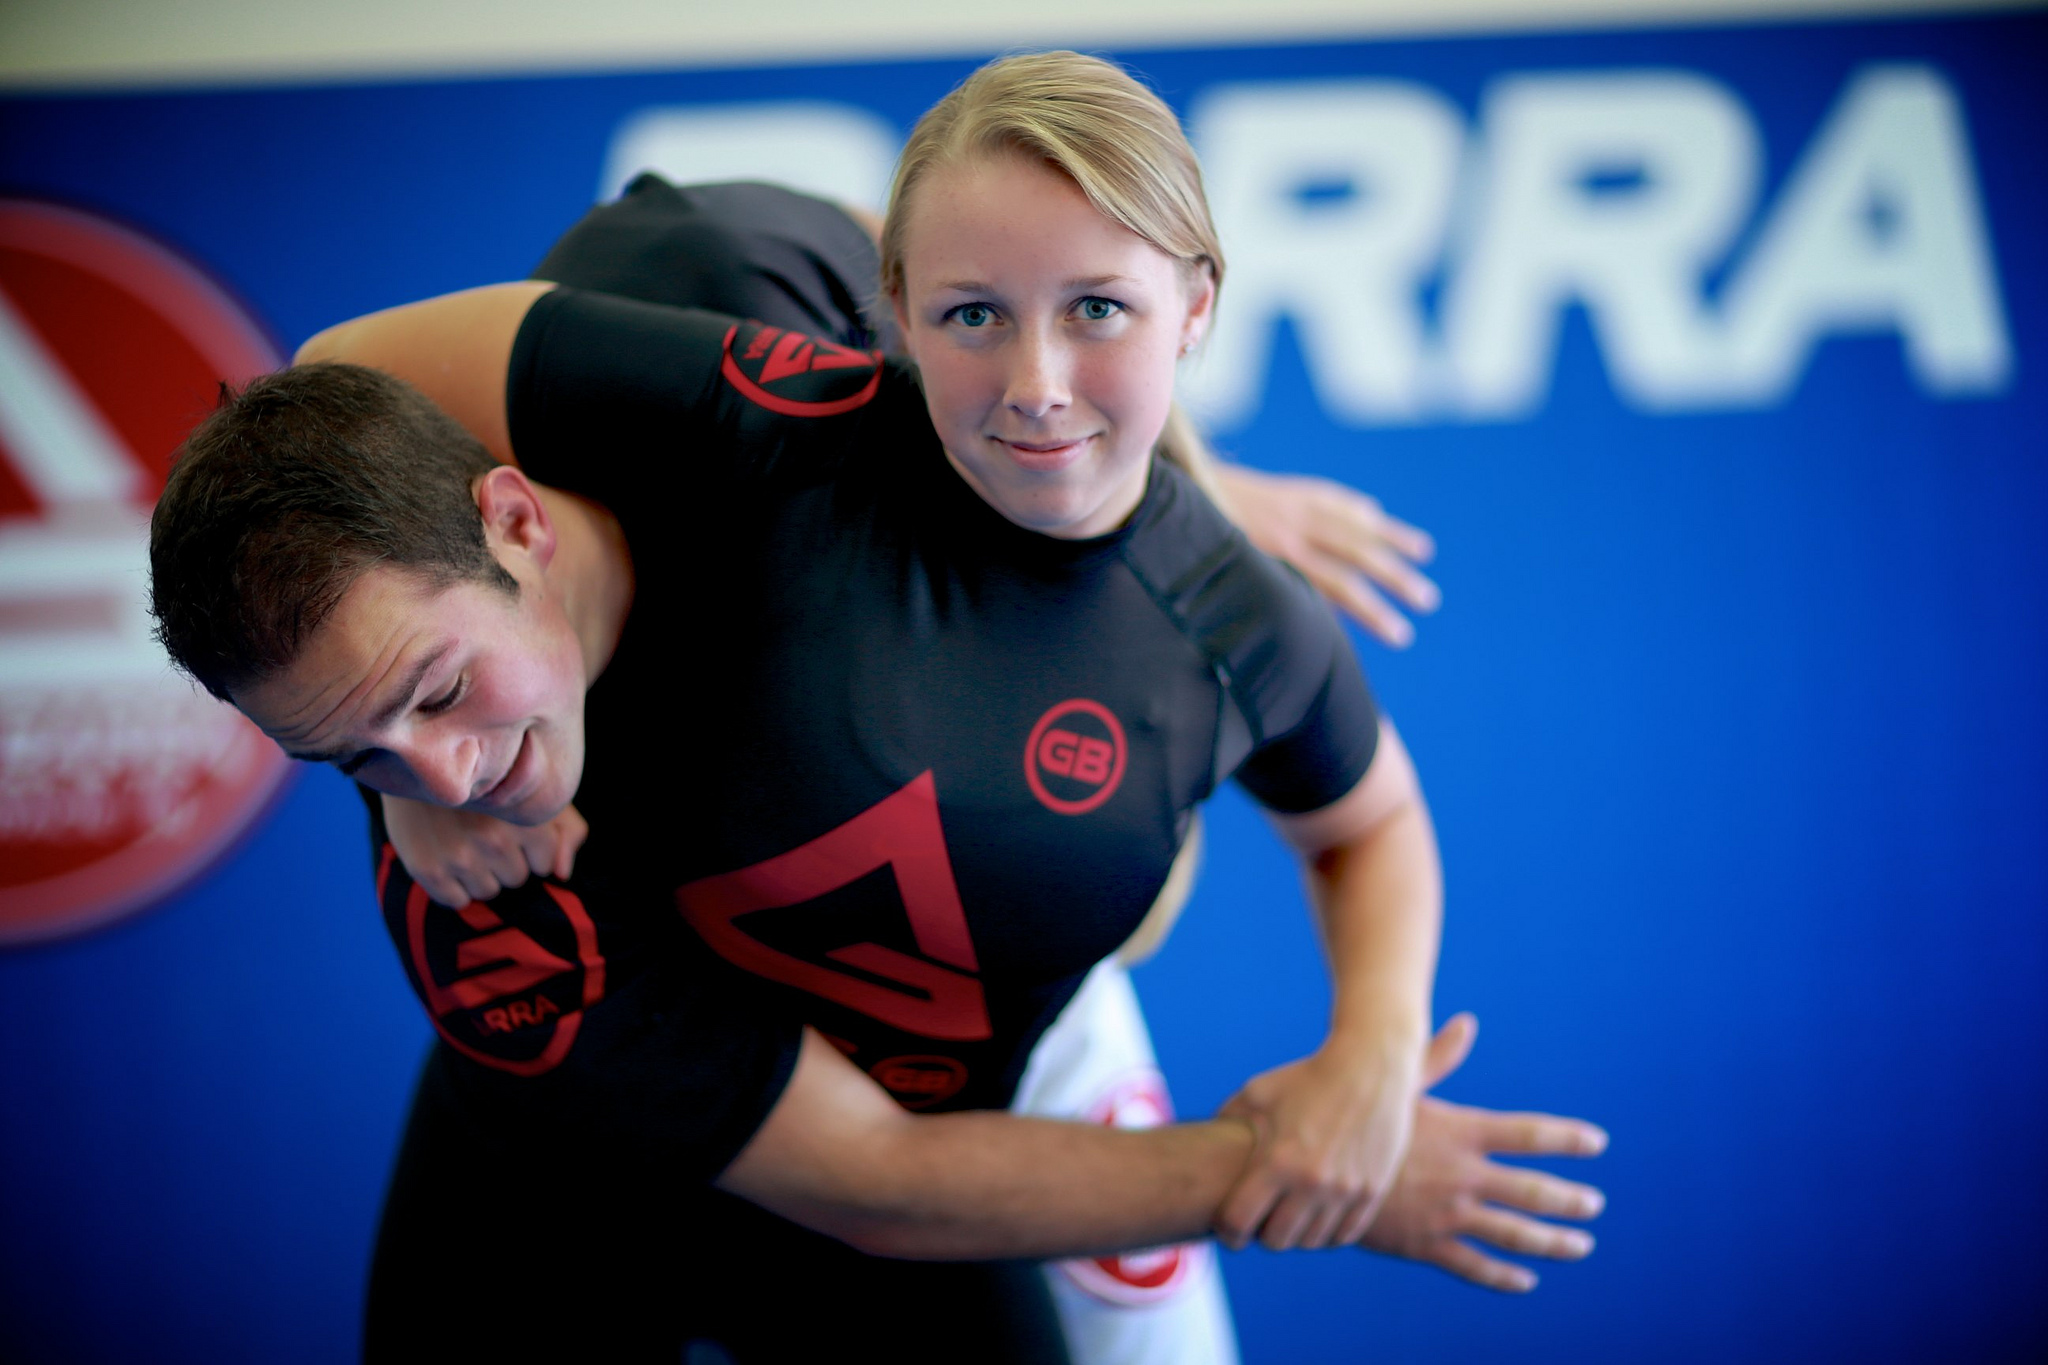 The Gracie Barra Curriculum: The Best Way to Learn Bjj   Gracie